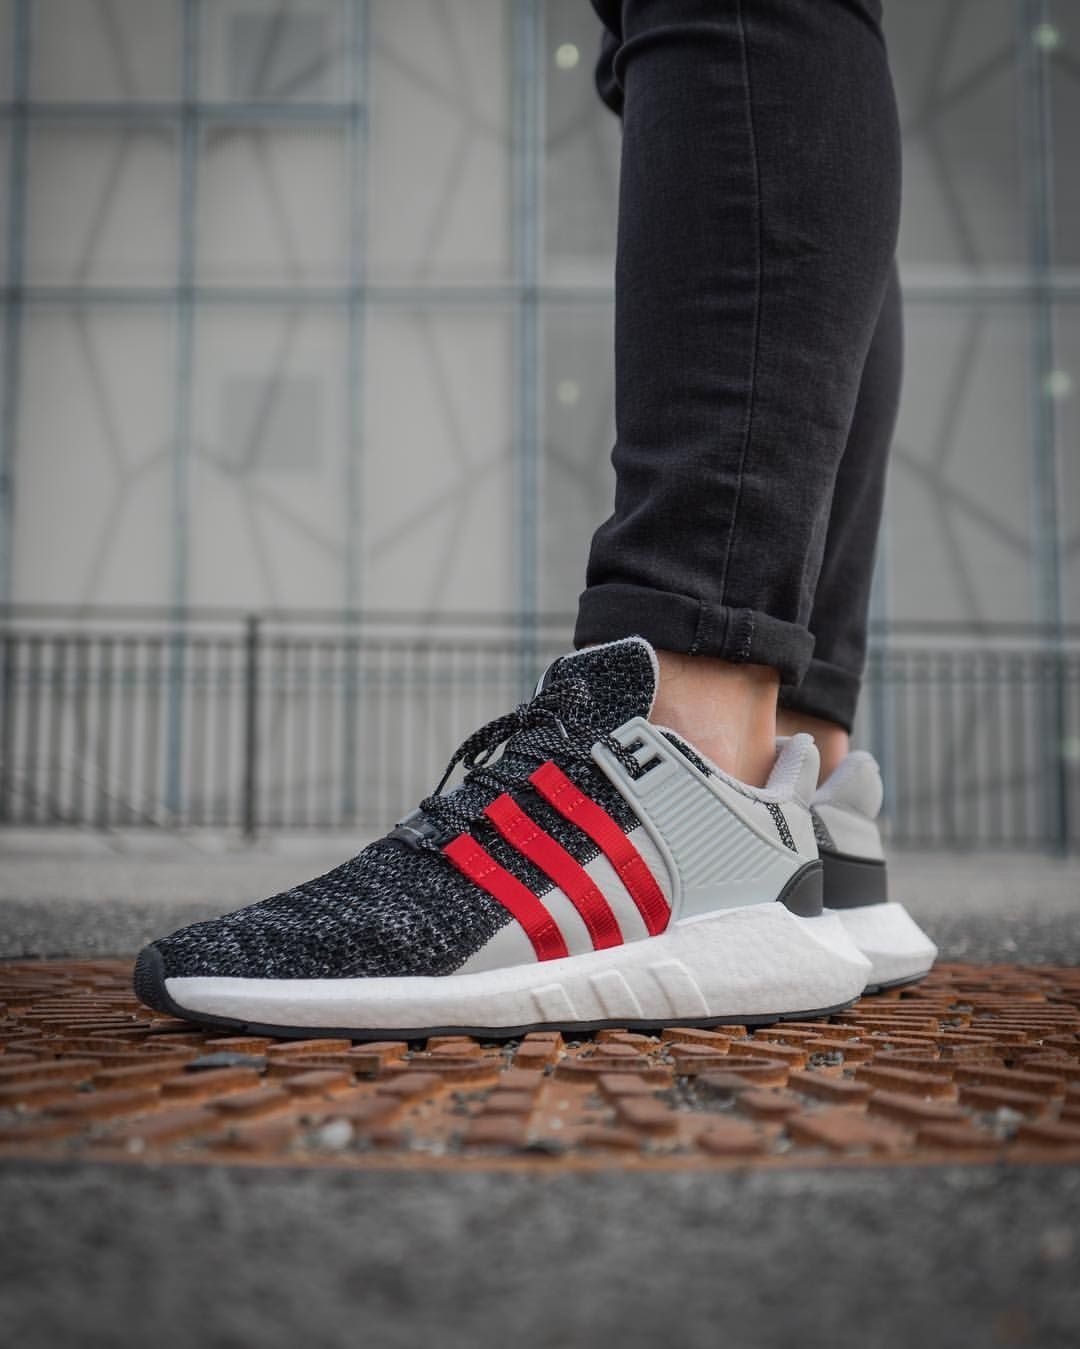 buy popular f0c21 eb9c0 Overkill x adidas EQT Support Future